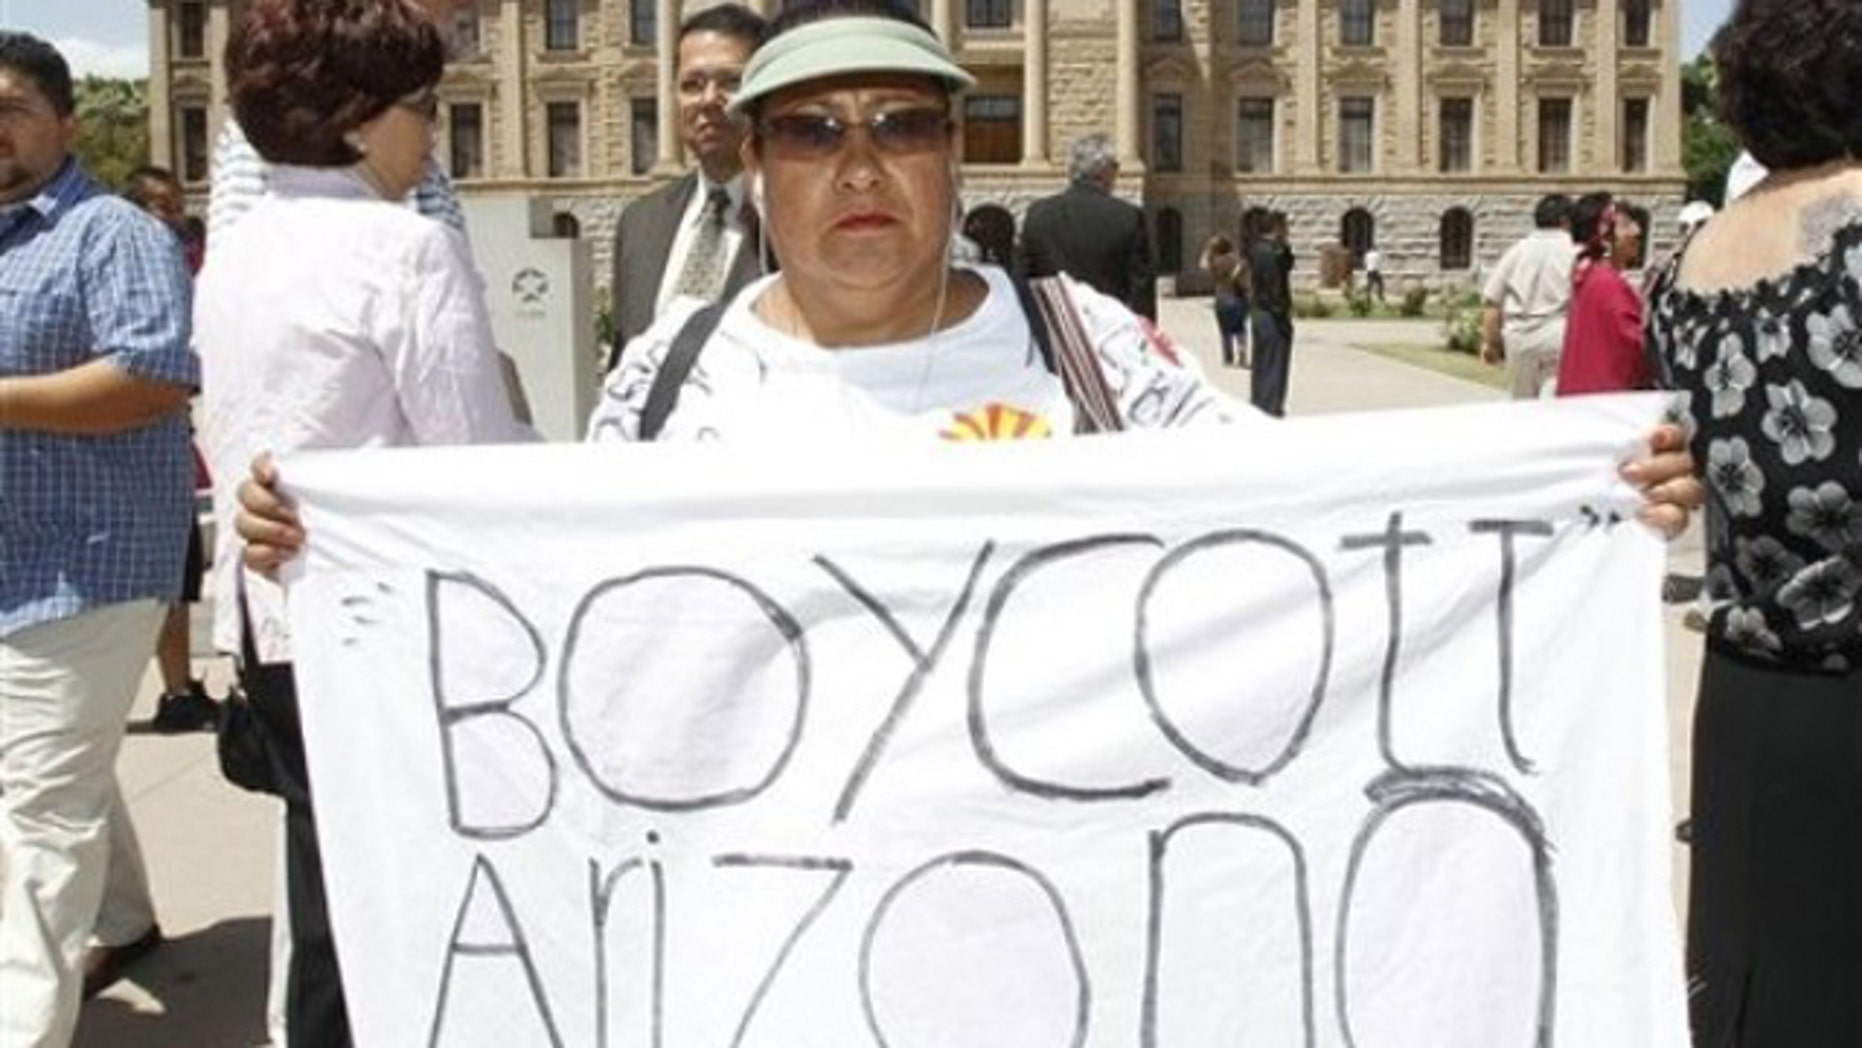 This April 29 file photo shows Josephine Nevarez, of Phoenix, holding a sign in protest of the Arizona immigration law at the Arizona Capitol in Phoenix. (AP Photo)